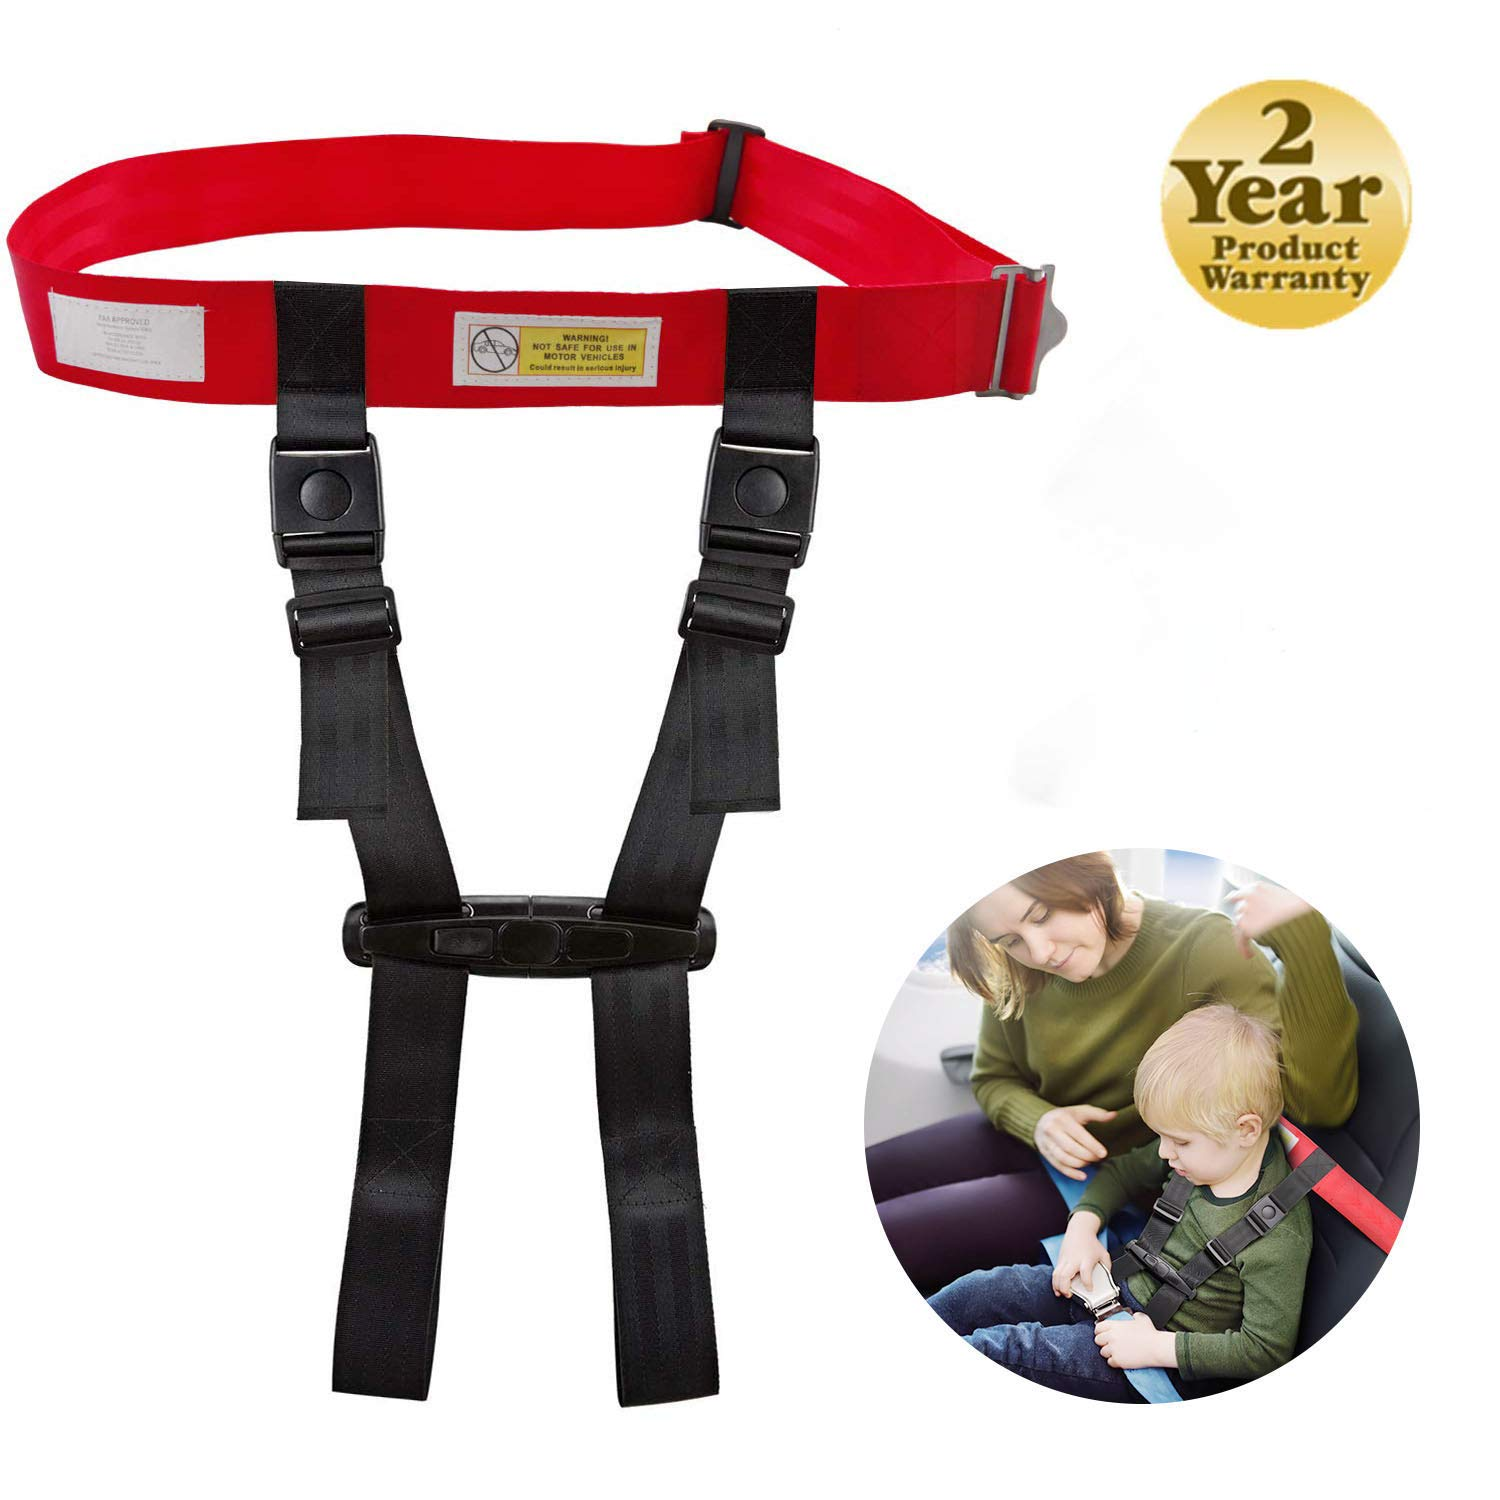 Child Safety Airplane Travel Harness,Care Harness Restraint System,FAA Approved Child Airplane Safety Harness